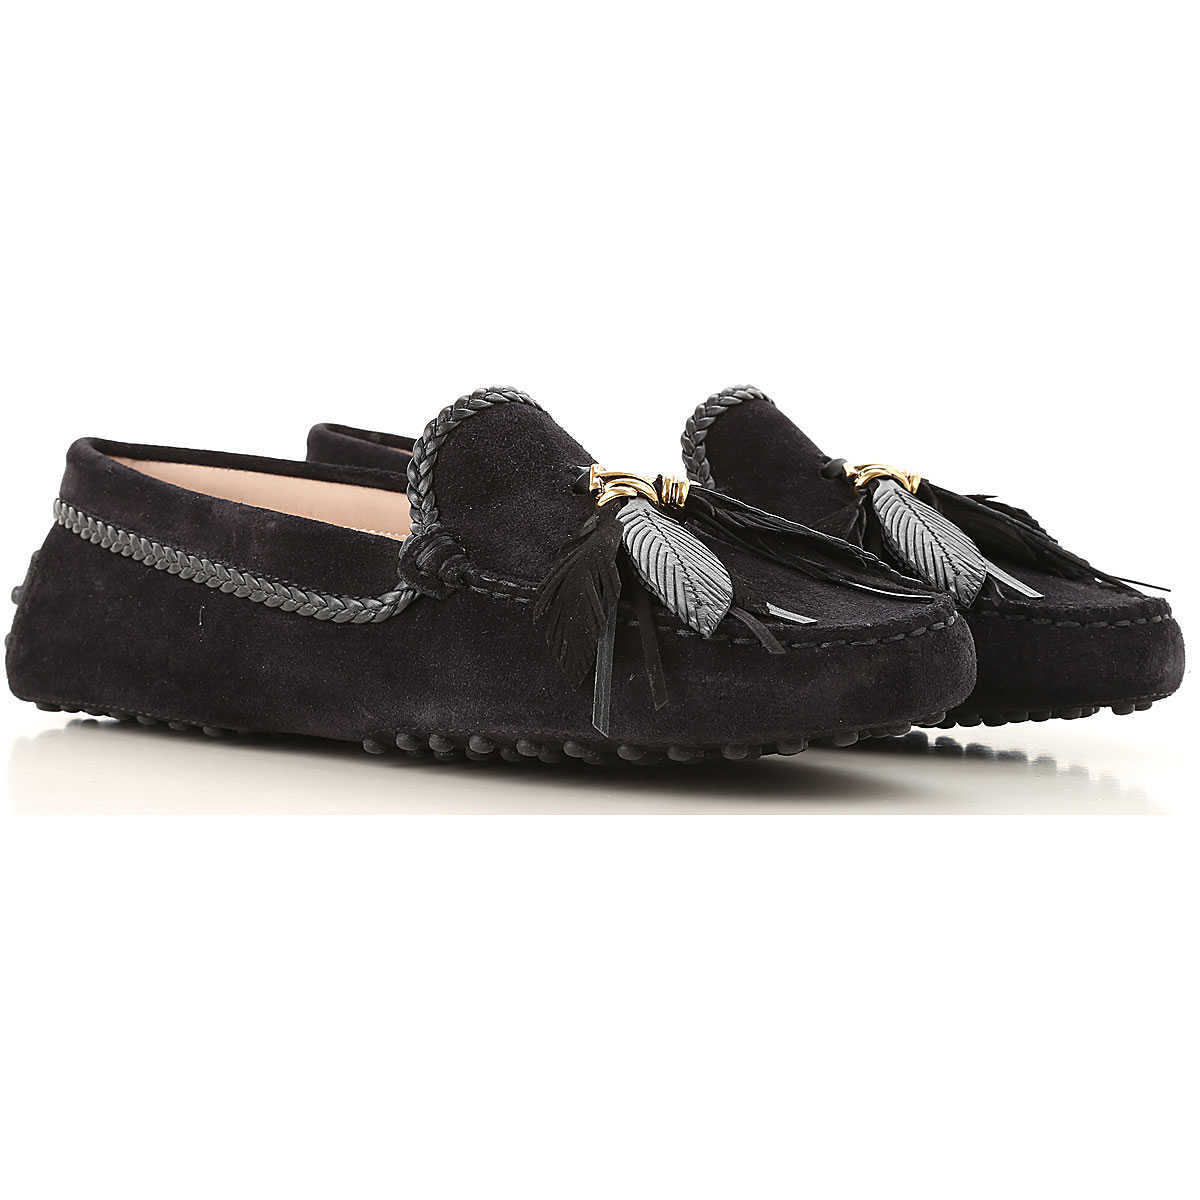 Tods Loafers for Women On Sale Dark Blue Navy - GOOFASH